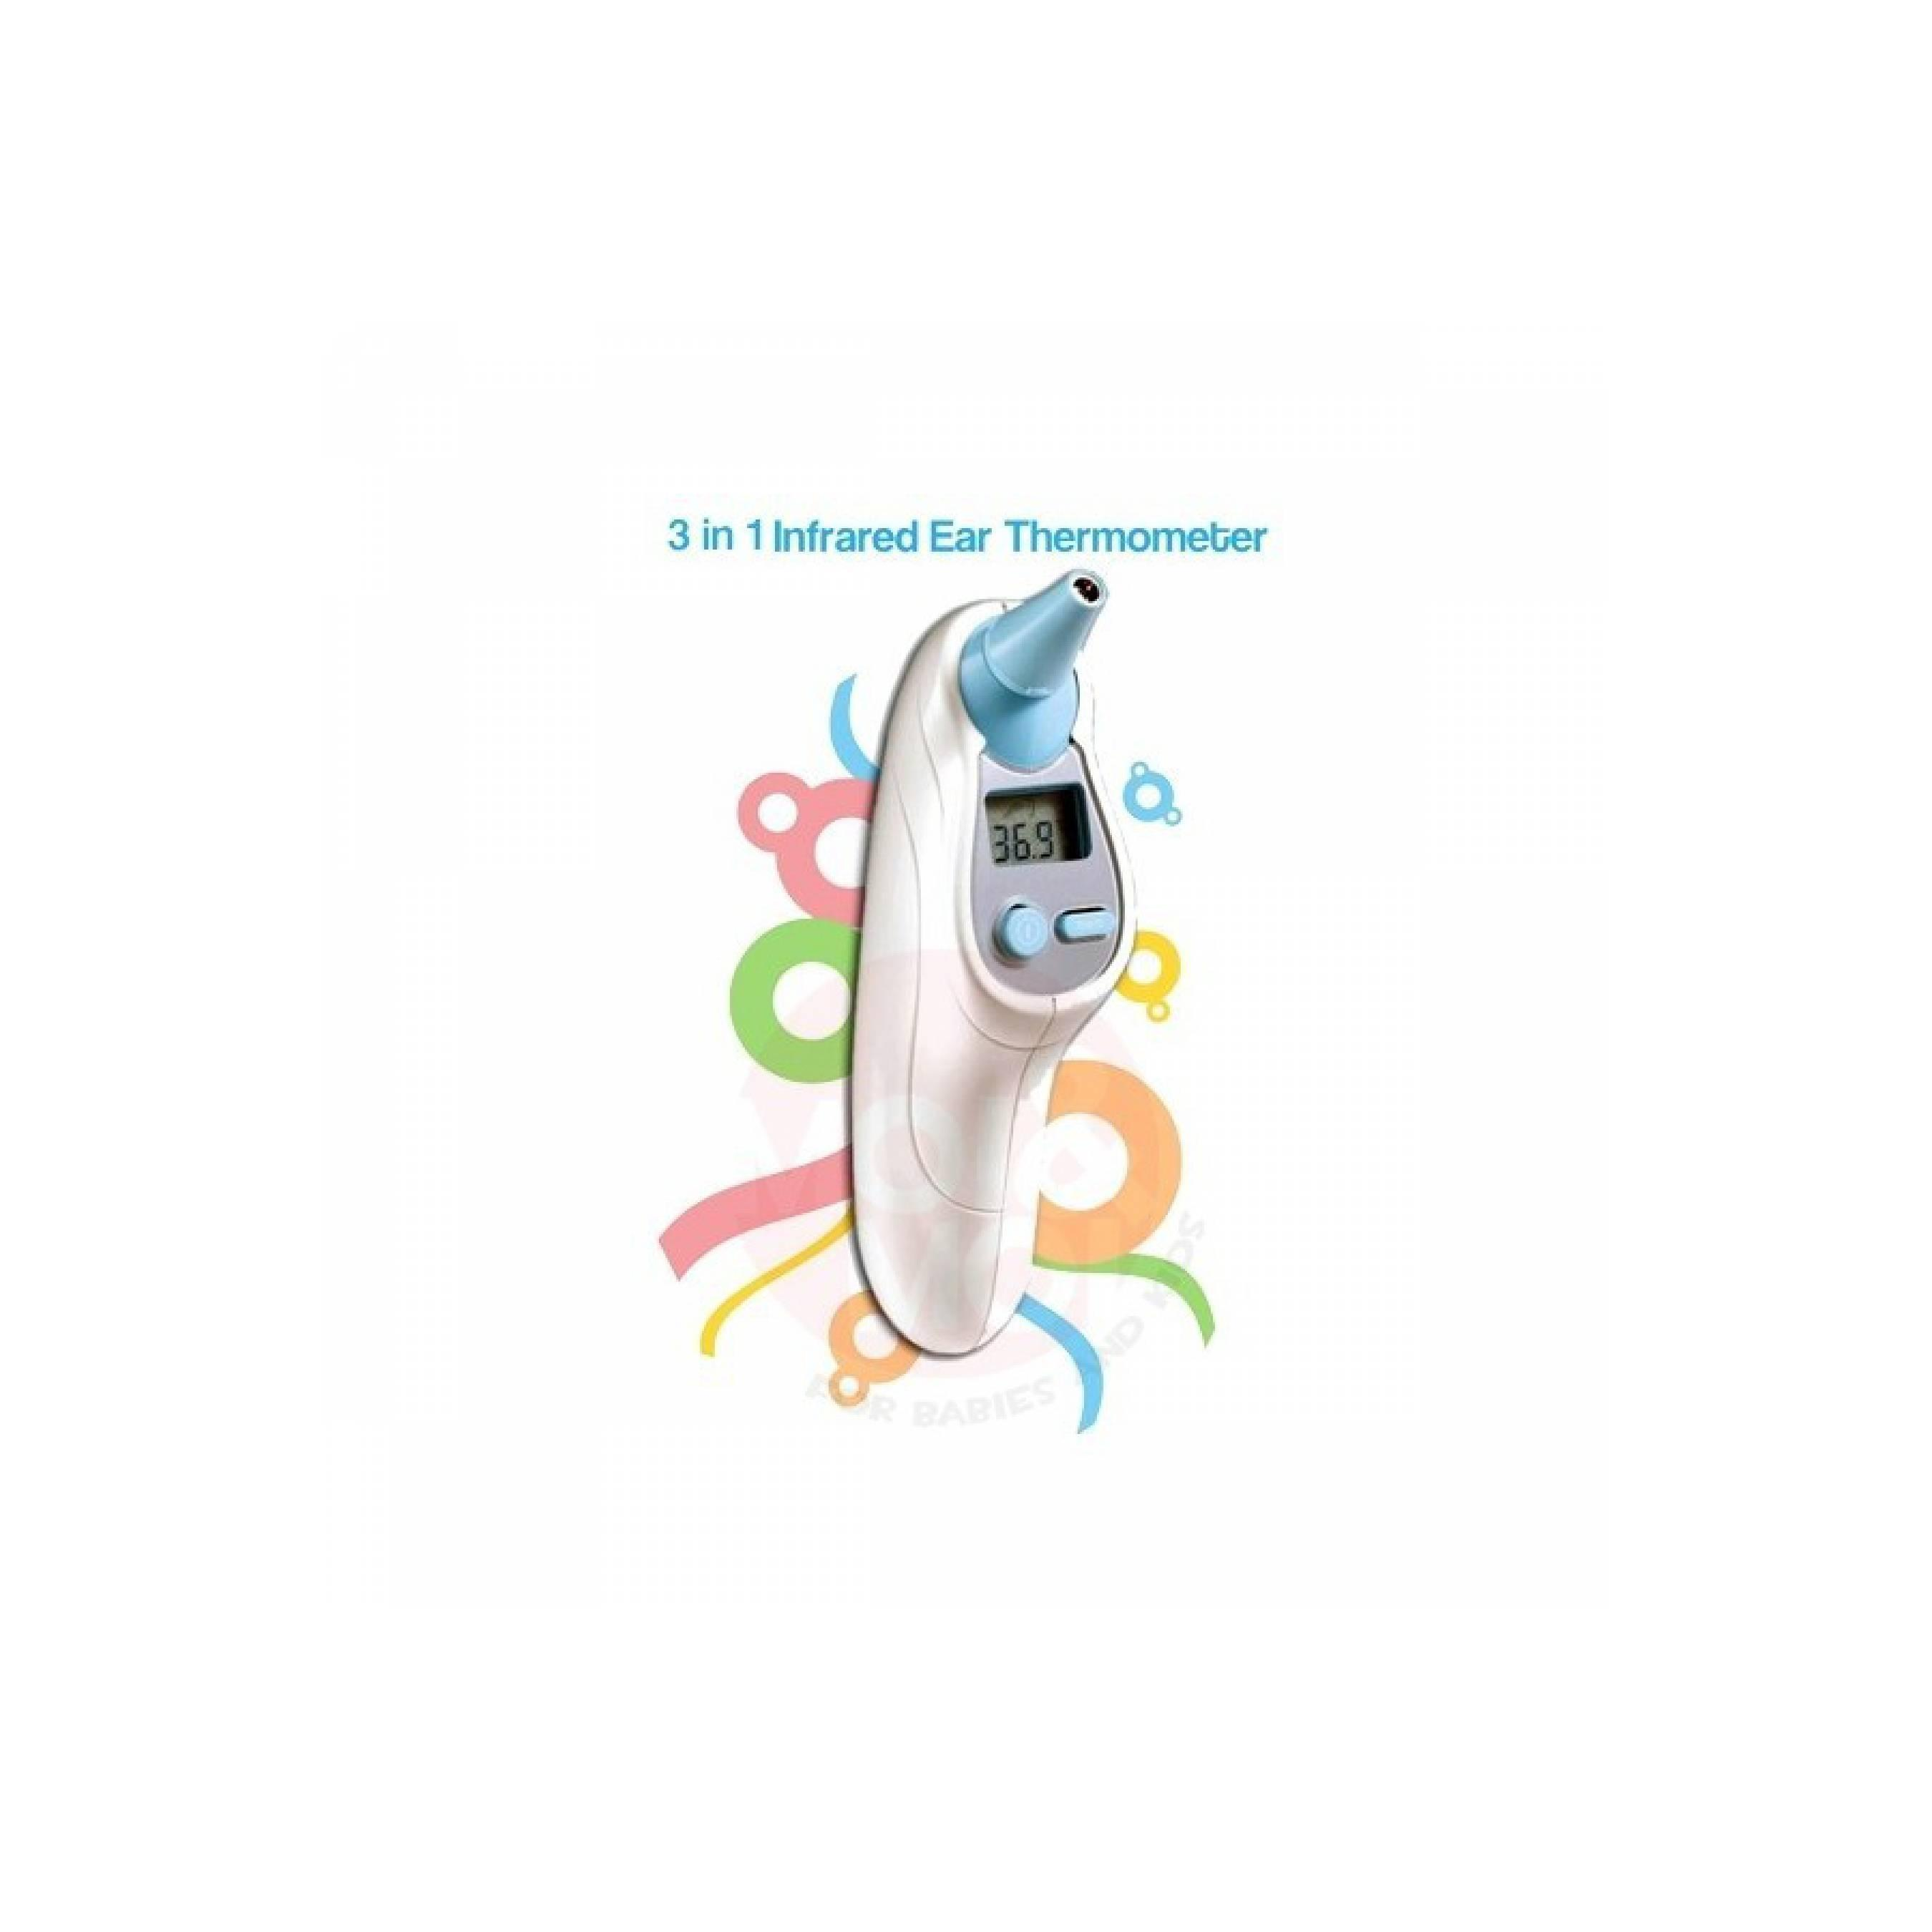 Thermometer Digital Infrared 3 In 1/Termometer Infrared Little Giant